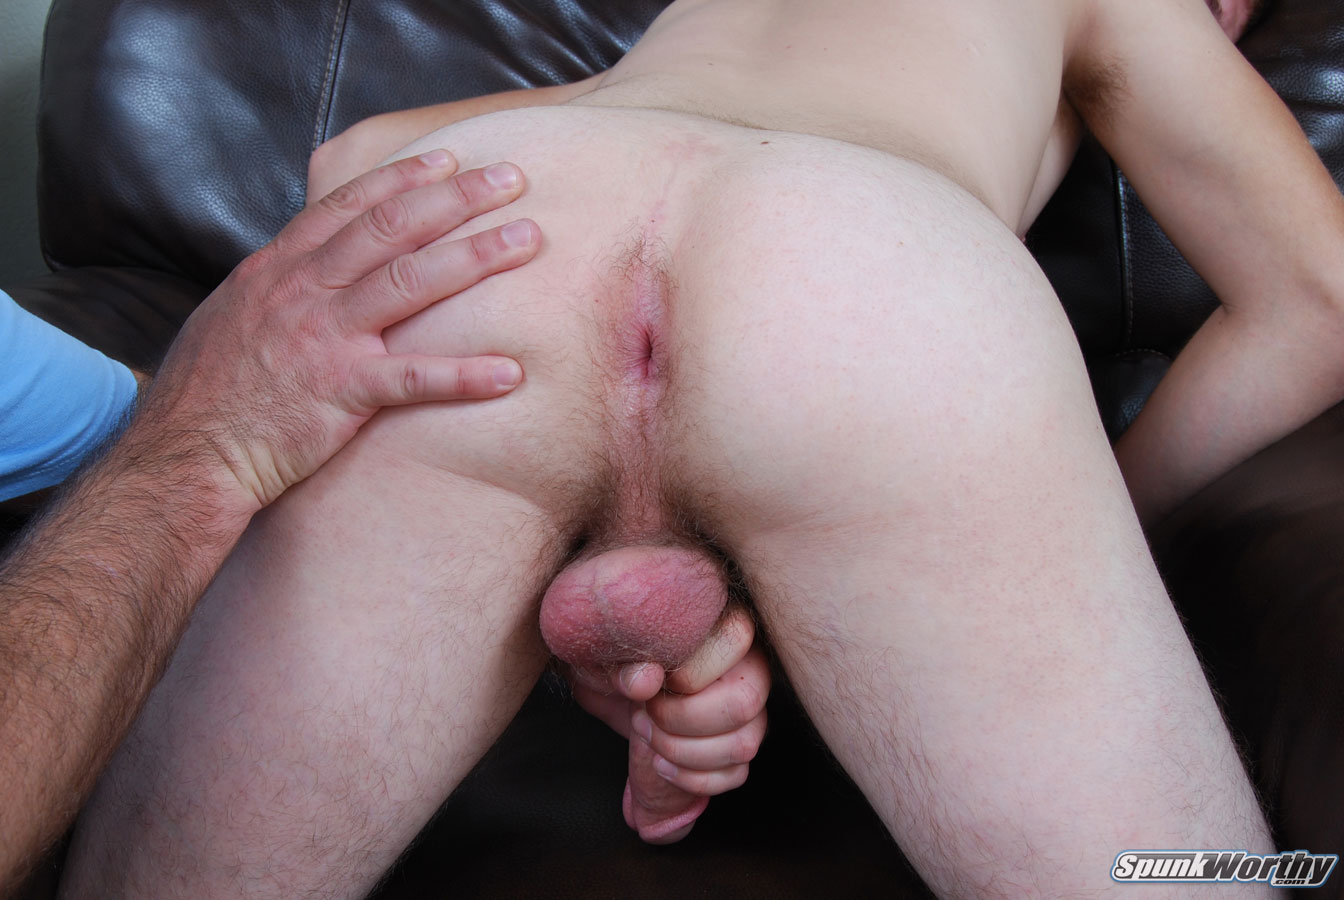 SpunkWorthy Galen US Marine Getting His Cock Sucked Amateur Gay Porn 08 Straight US Marine Gets His Cock Sucked And Ass Fingered By A Guy